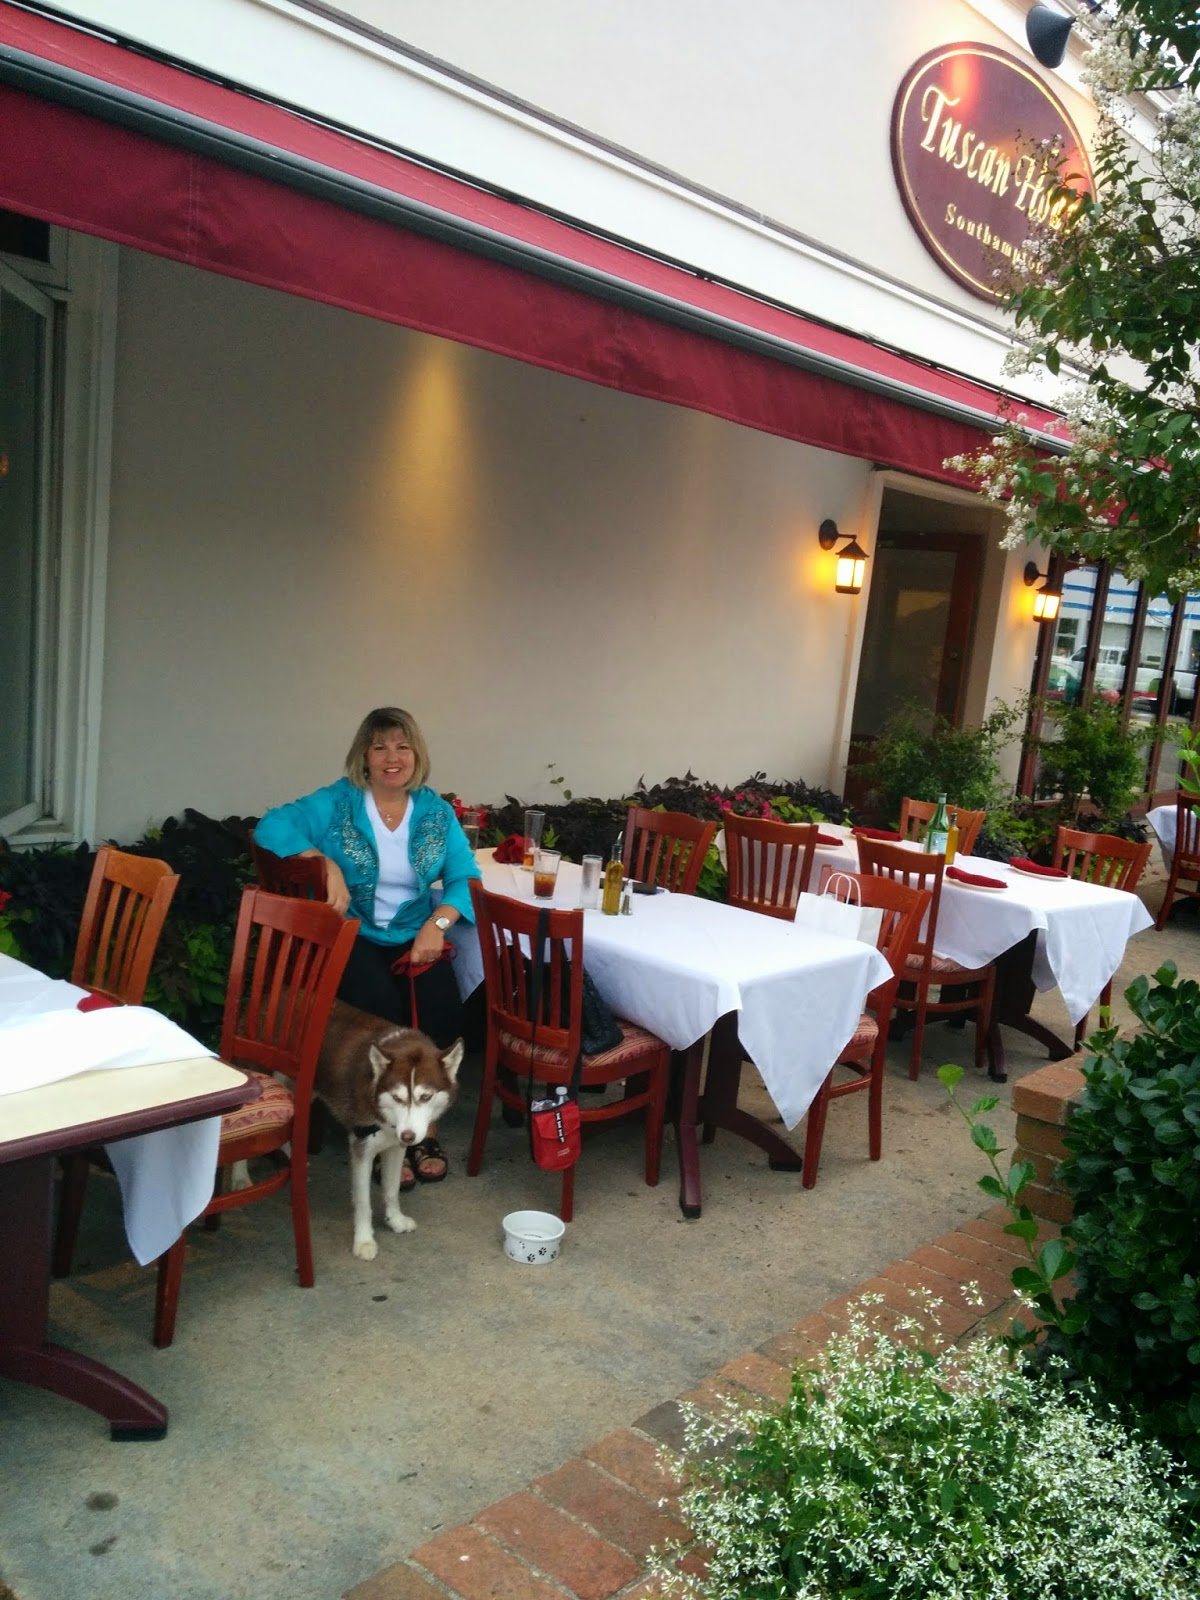 The Tuscan House restaurant in South Hampton, NY has great food, great service, and is very dog friendly